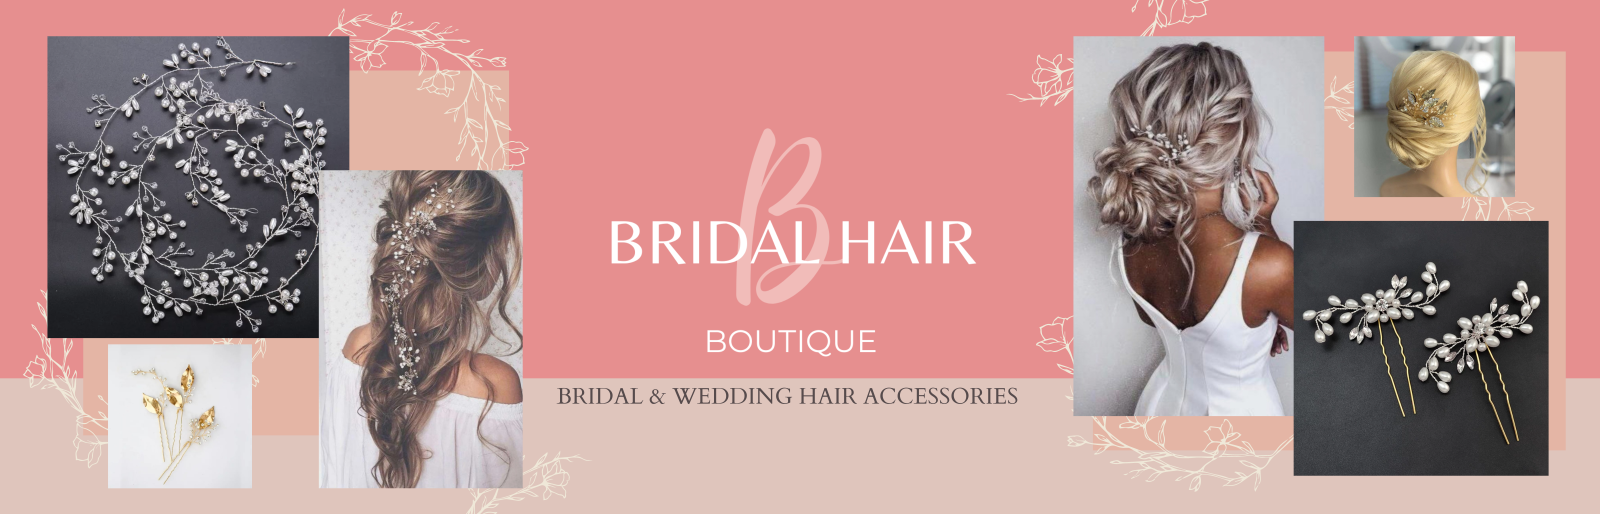 Bridal Hair Boutique